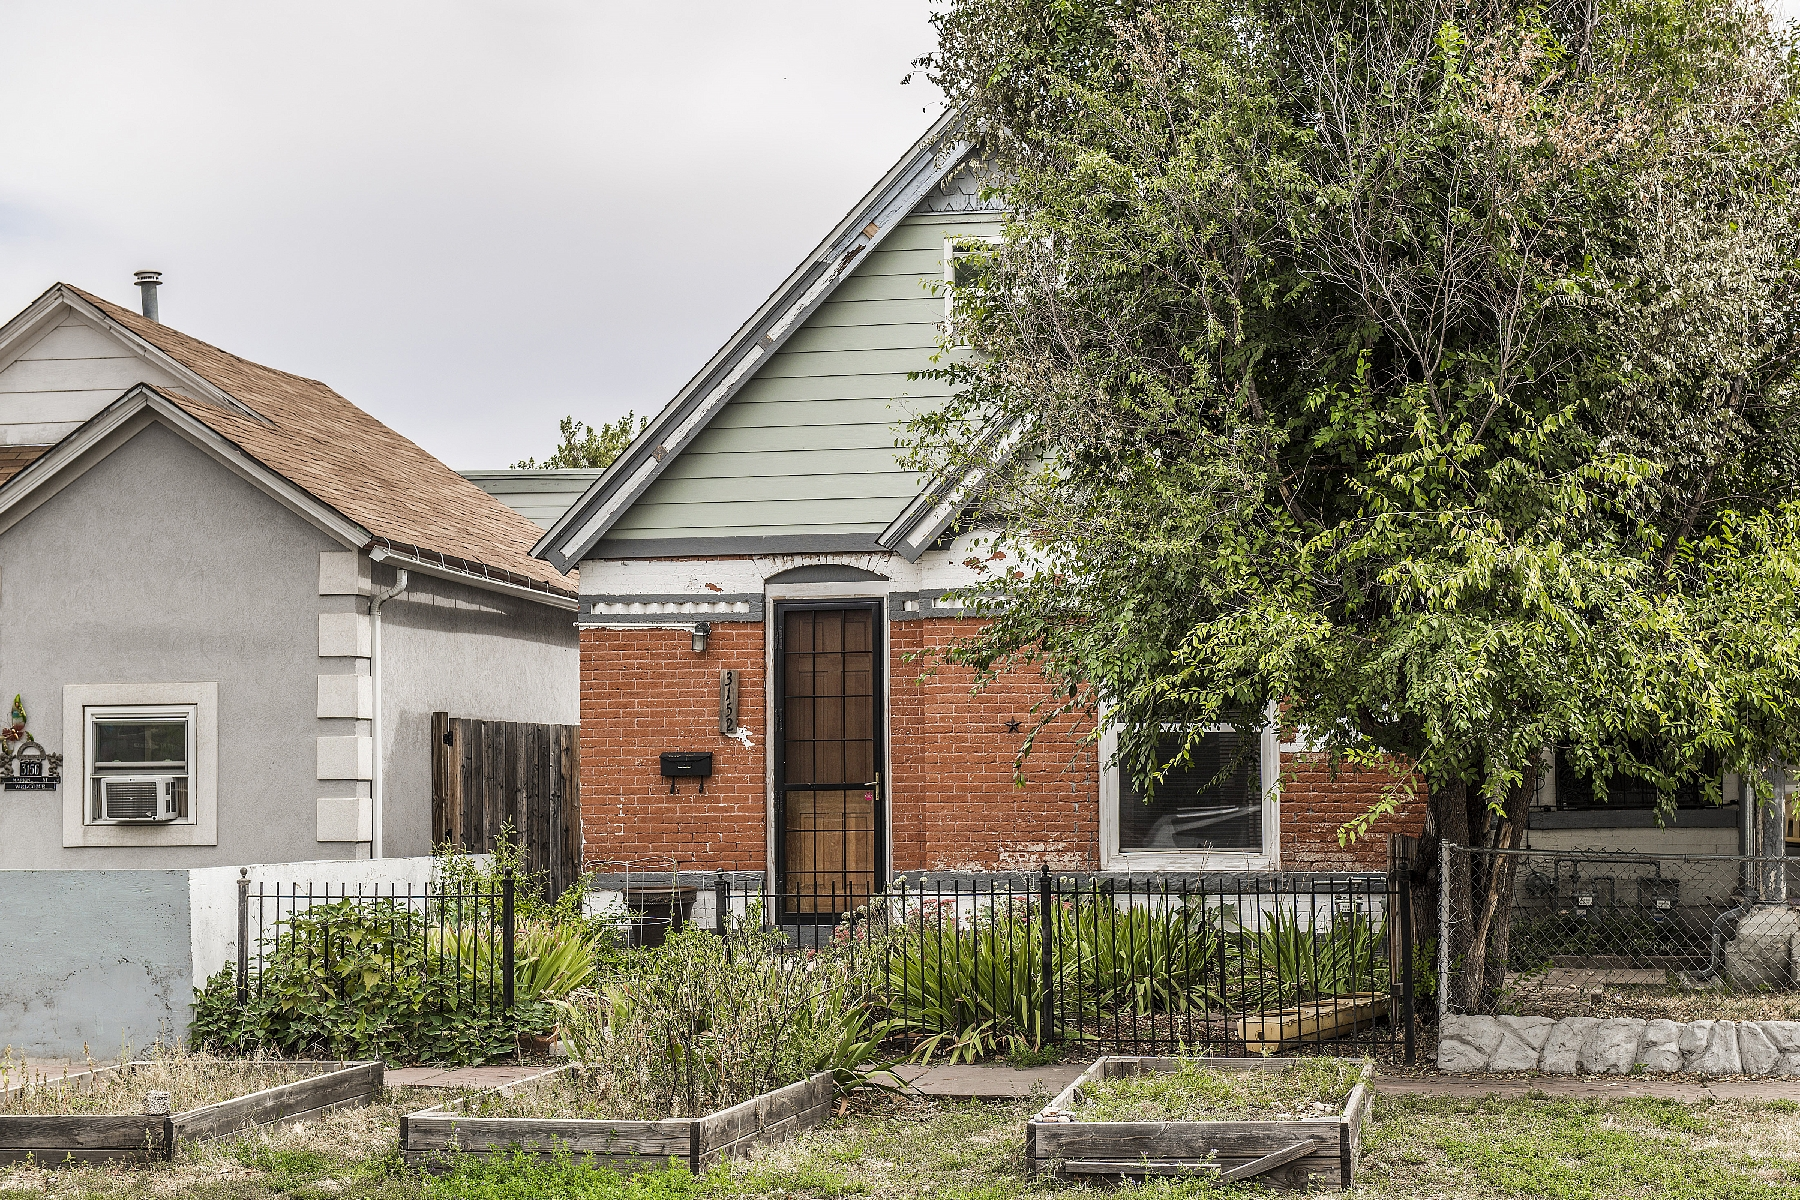 Single Family Home for Sale at 3152 N Marion St Whittier, Denver, Colorado 80205 United States